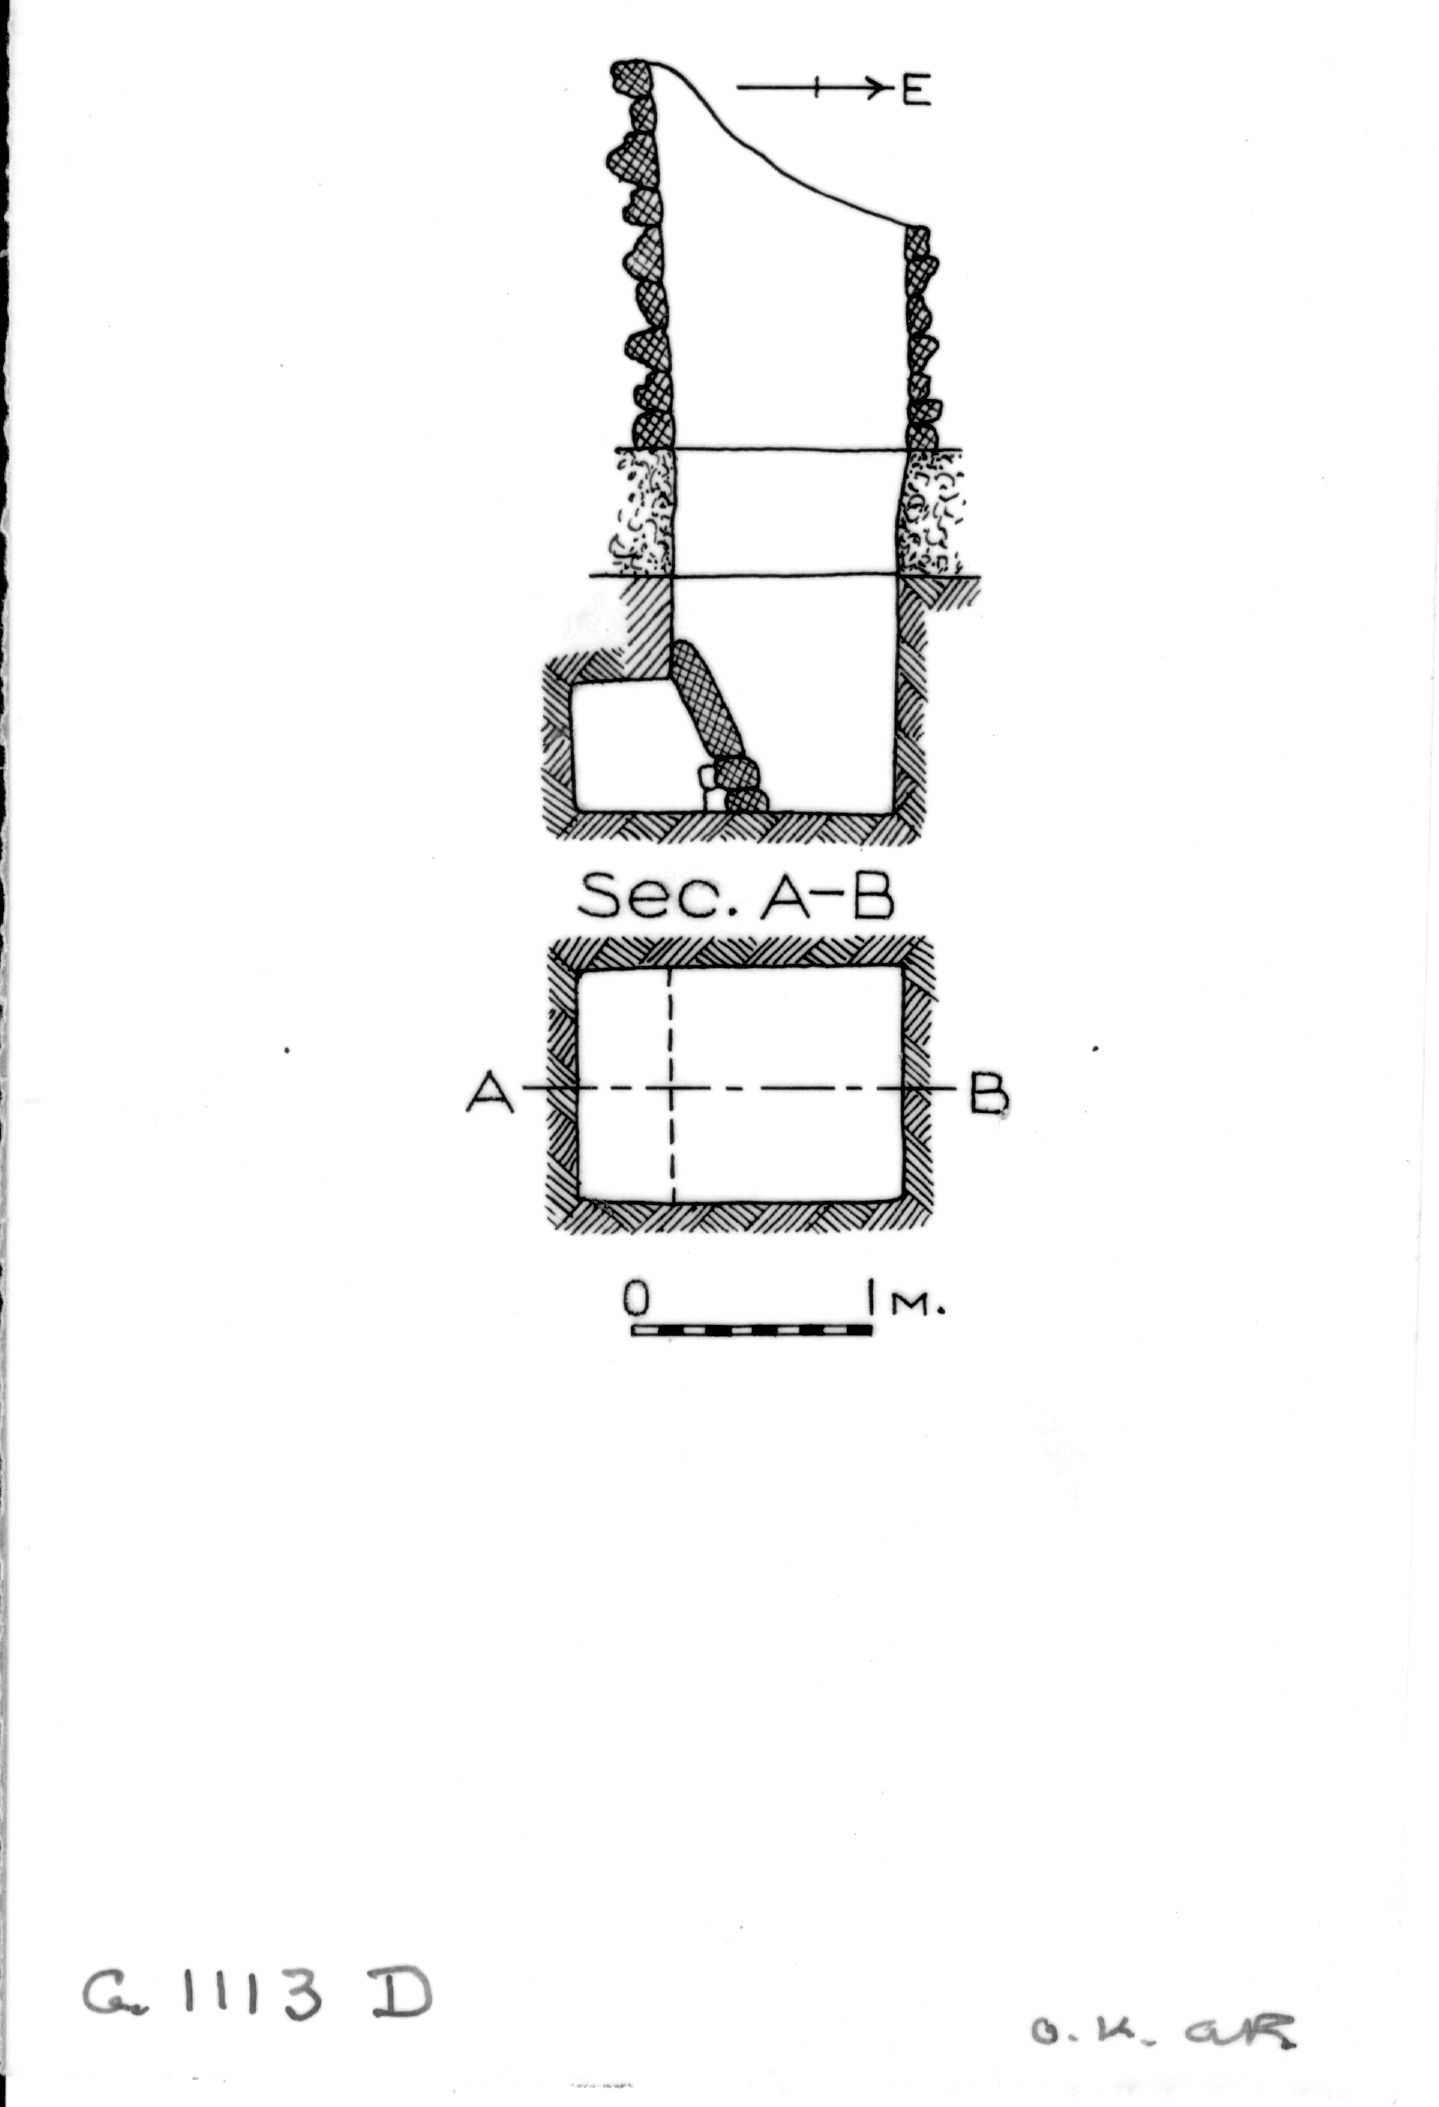 Maps and plans: G 1112+1113: G 1113, Shaft D